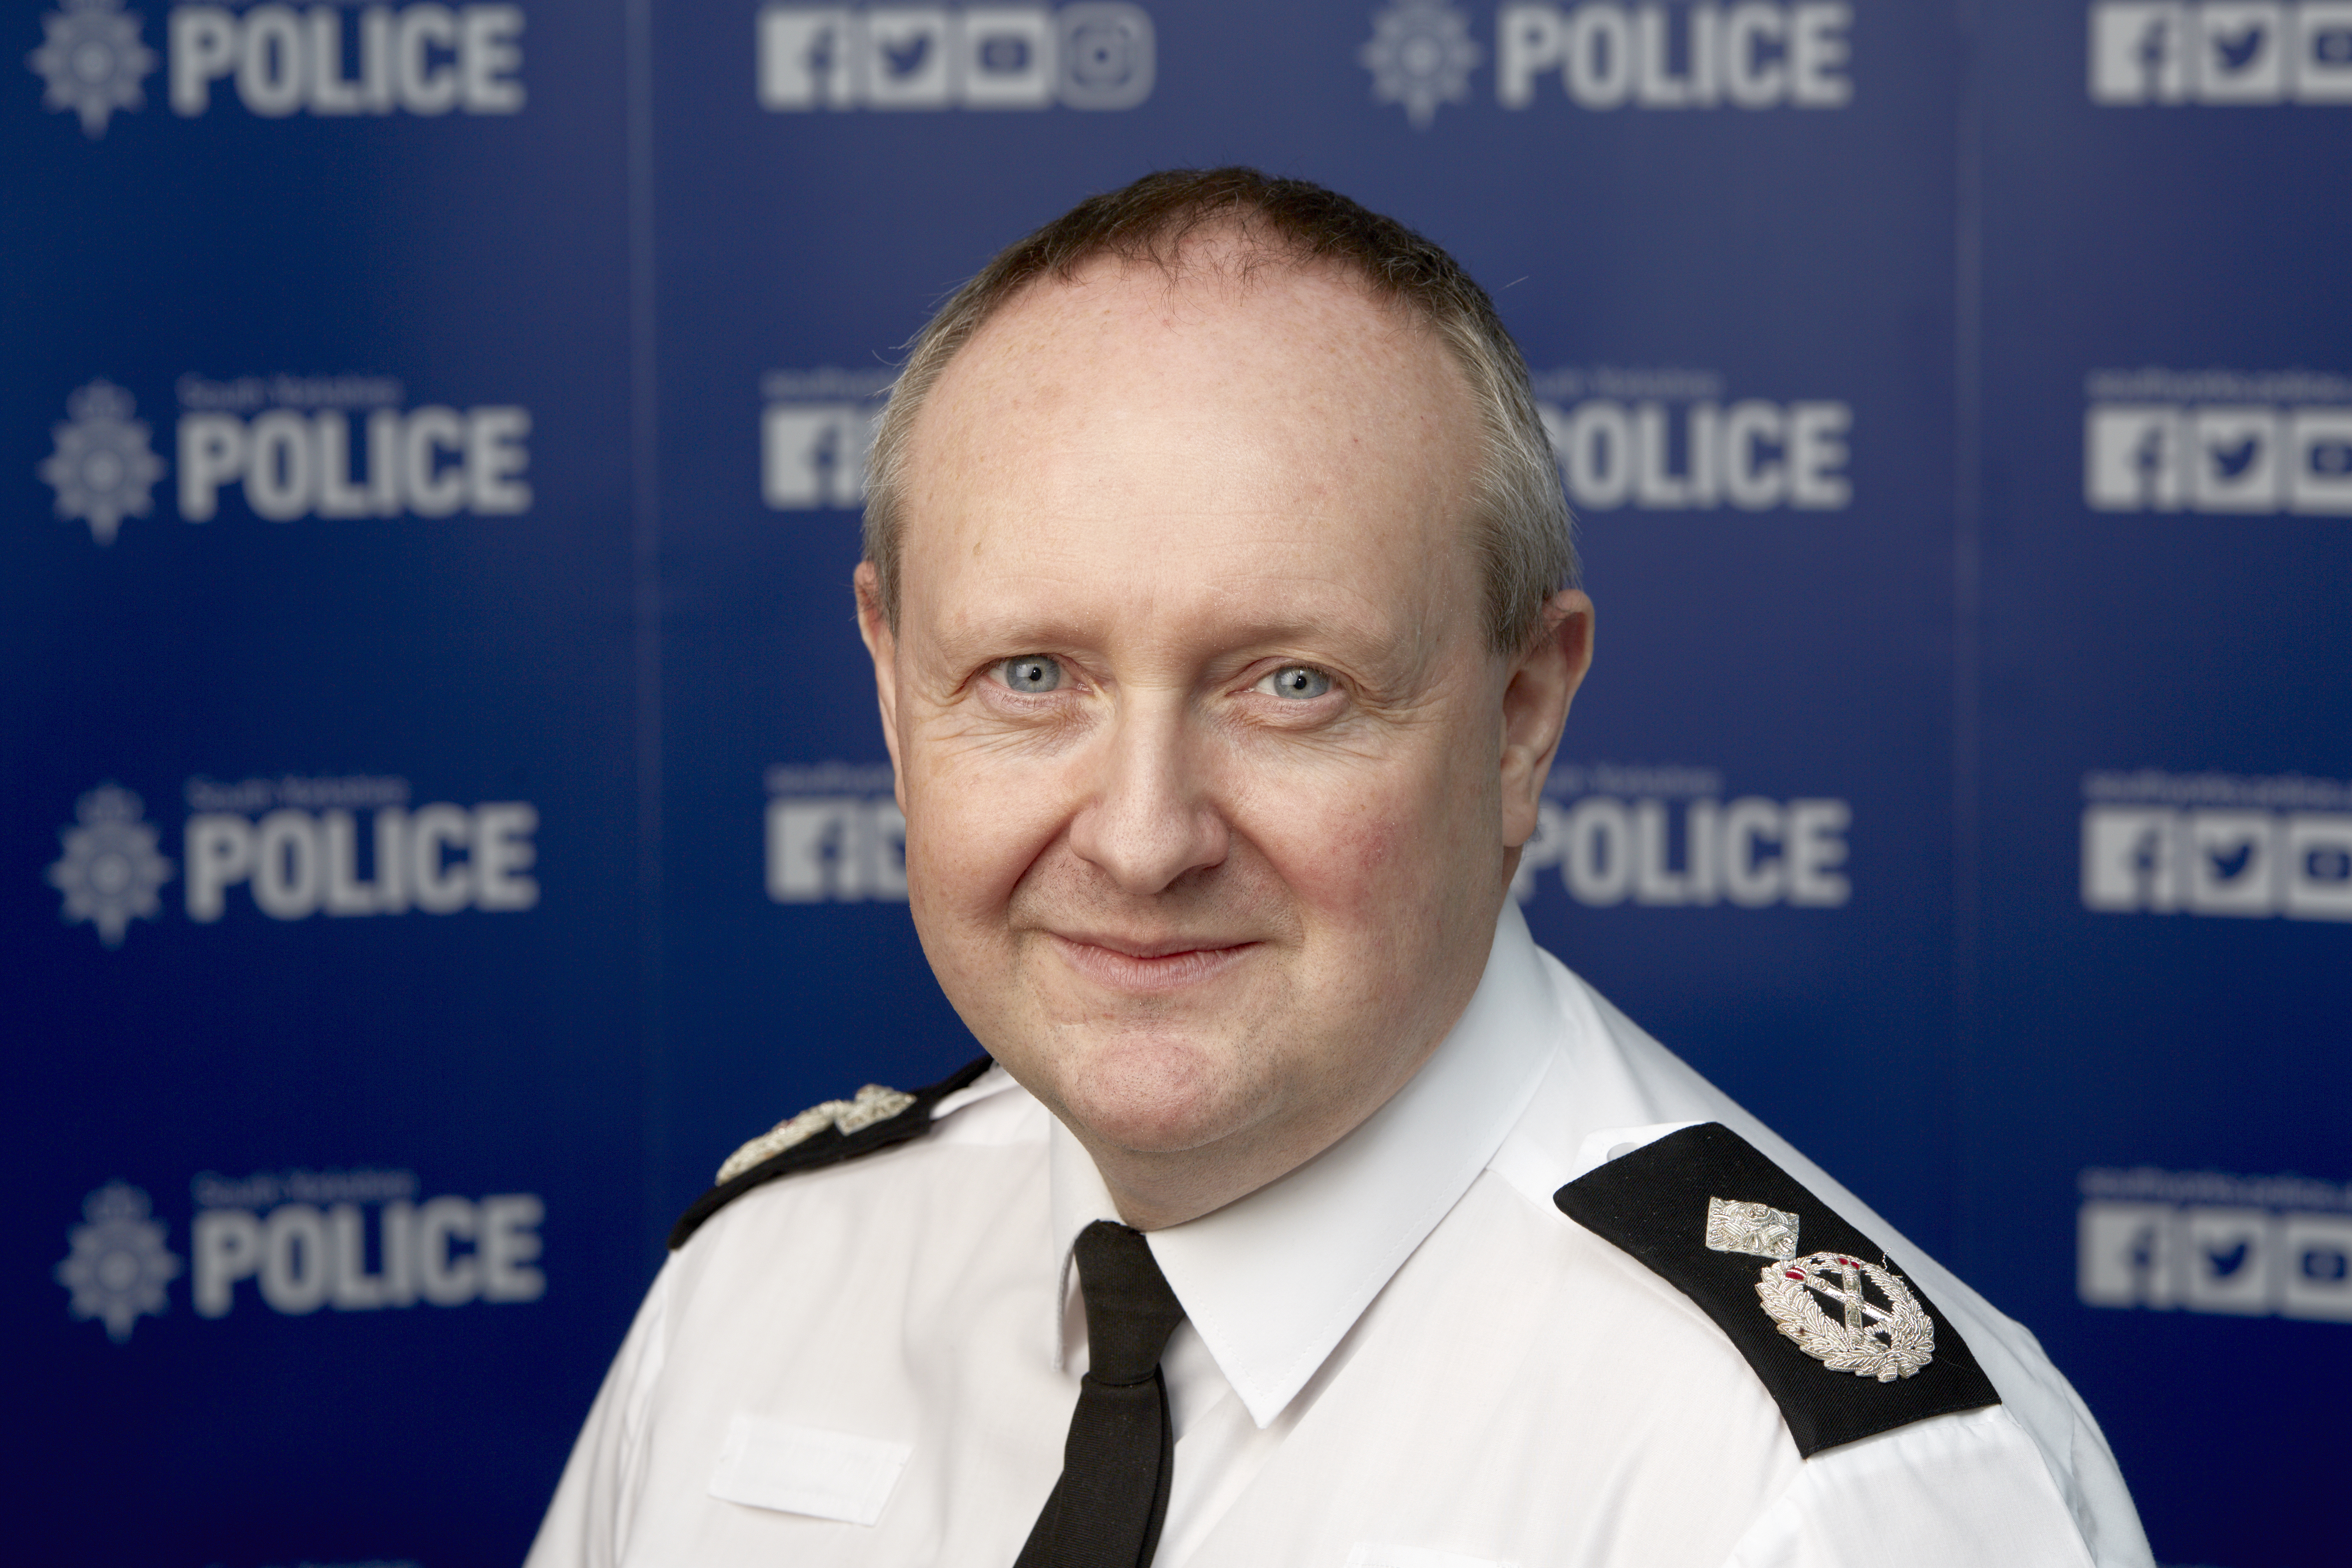 Deputy Chief Constable Mark Roberts